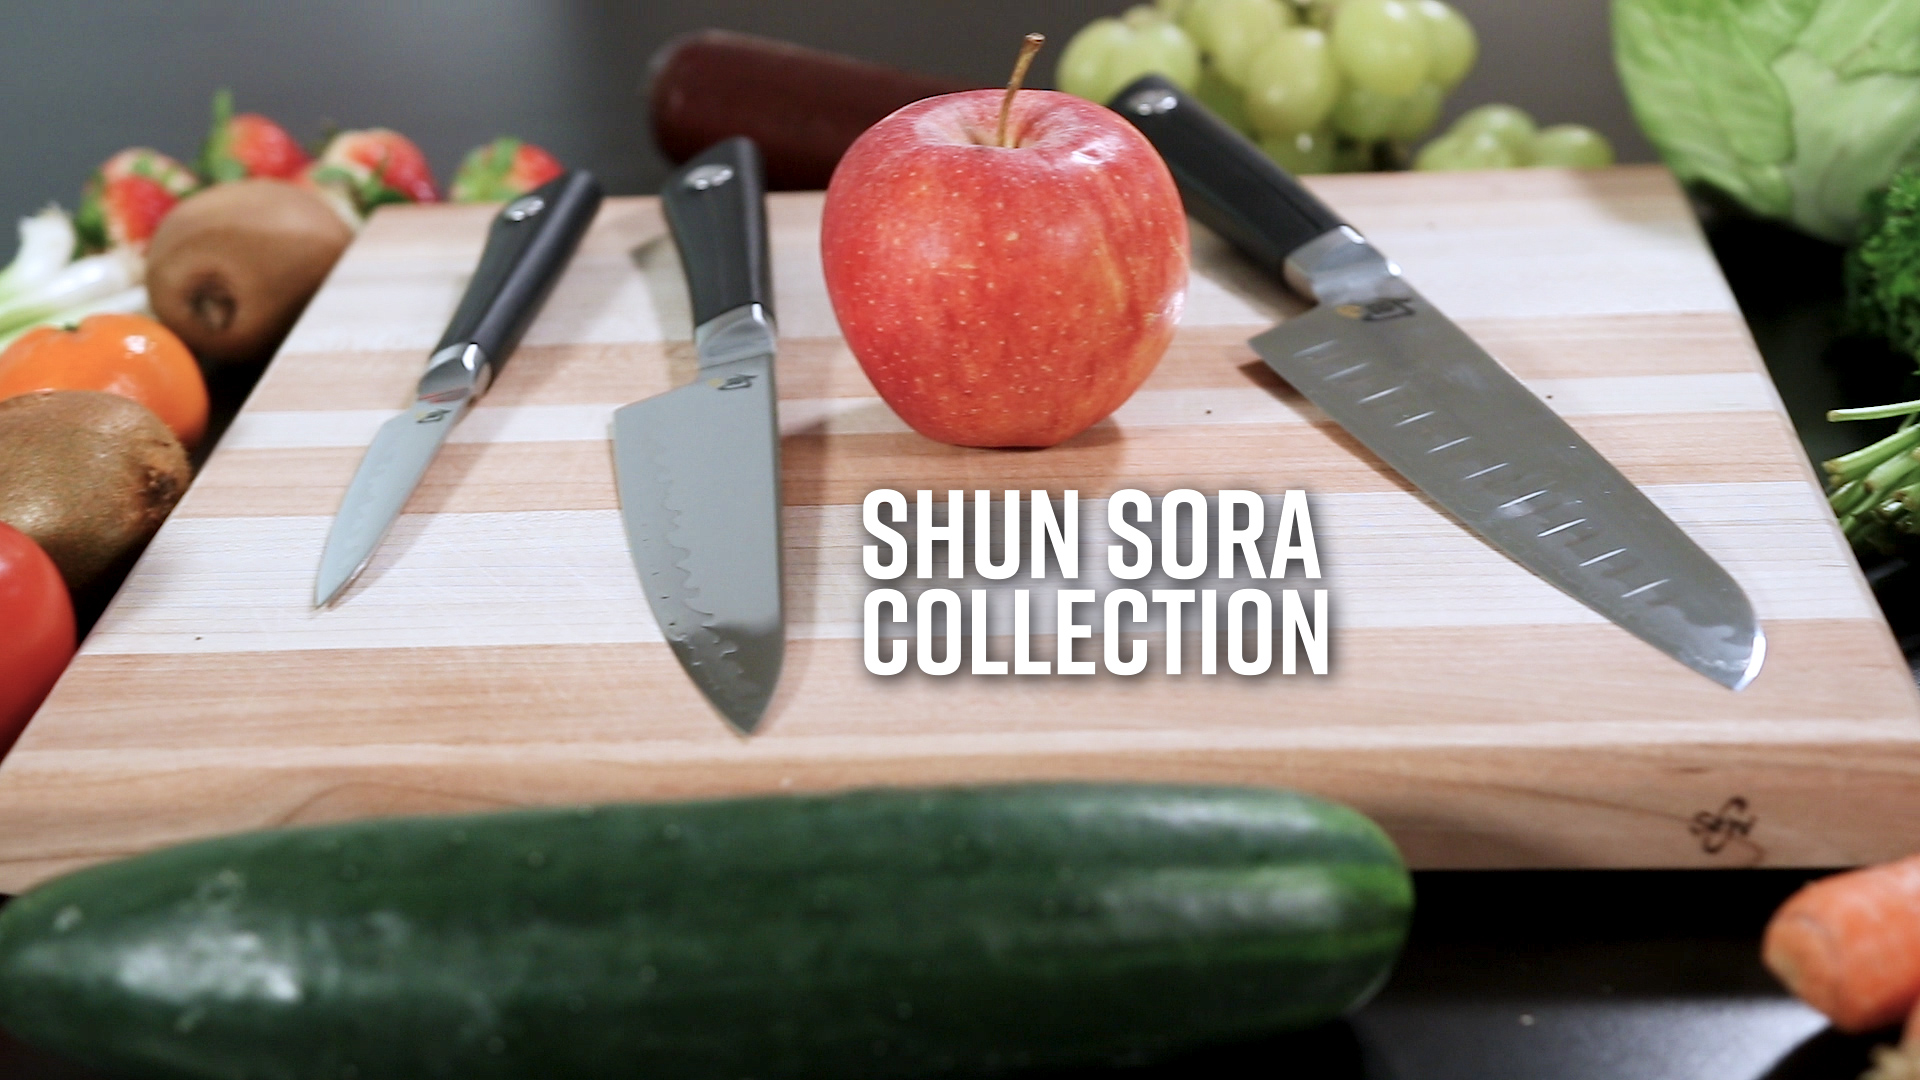 Shun Sora Collection